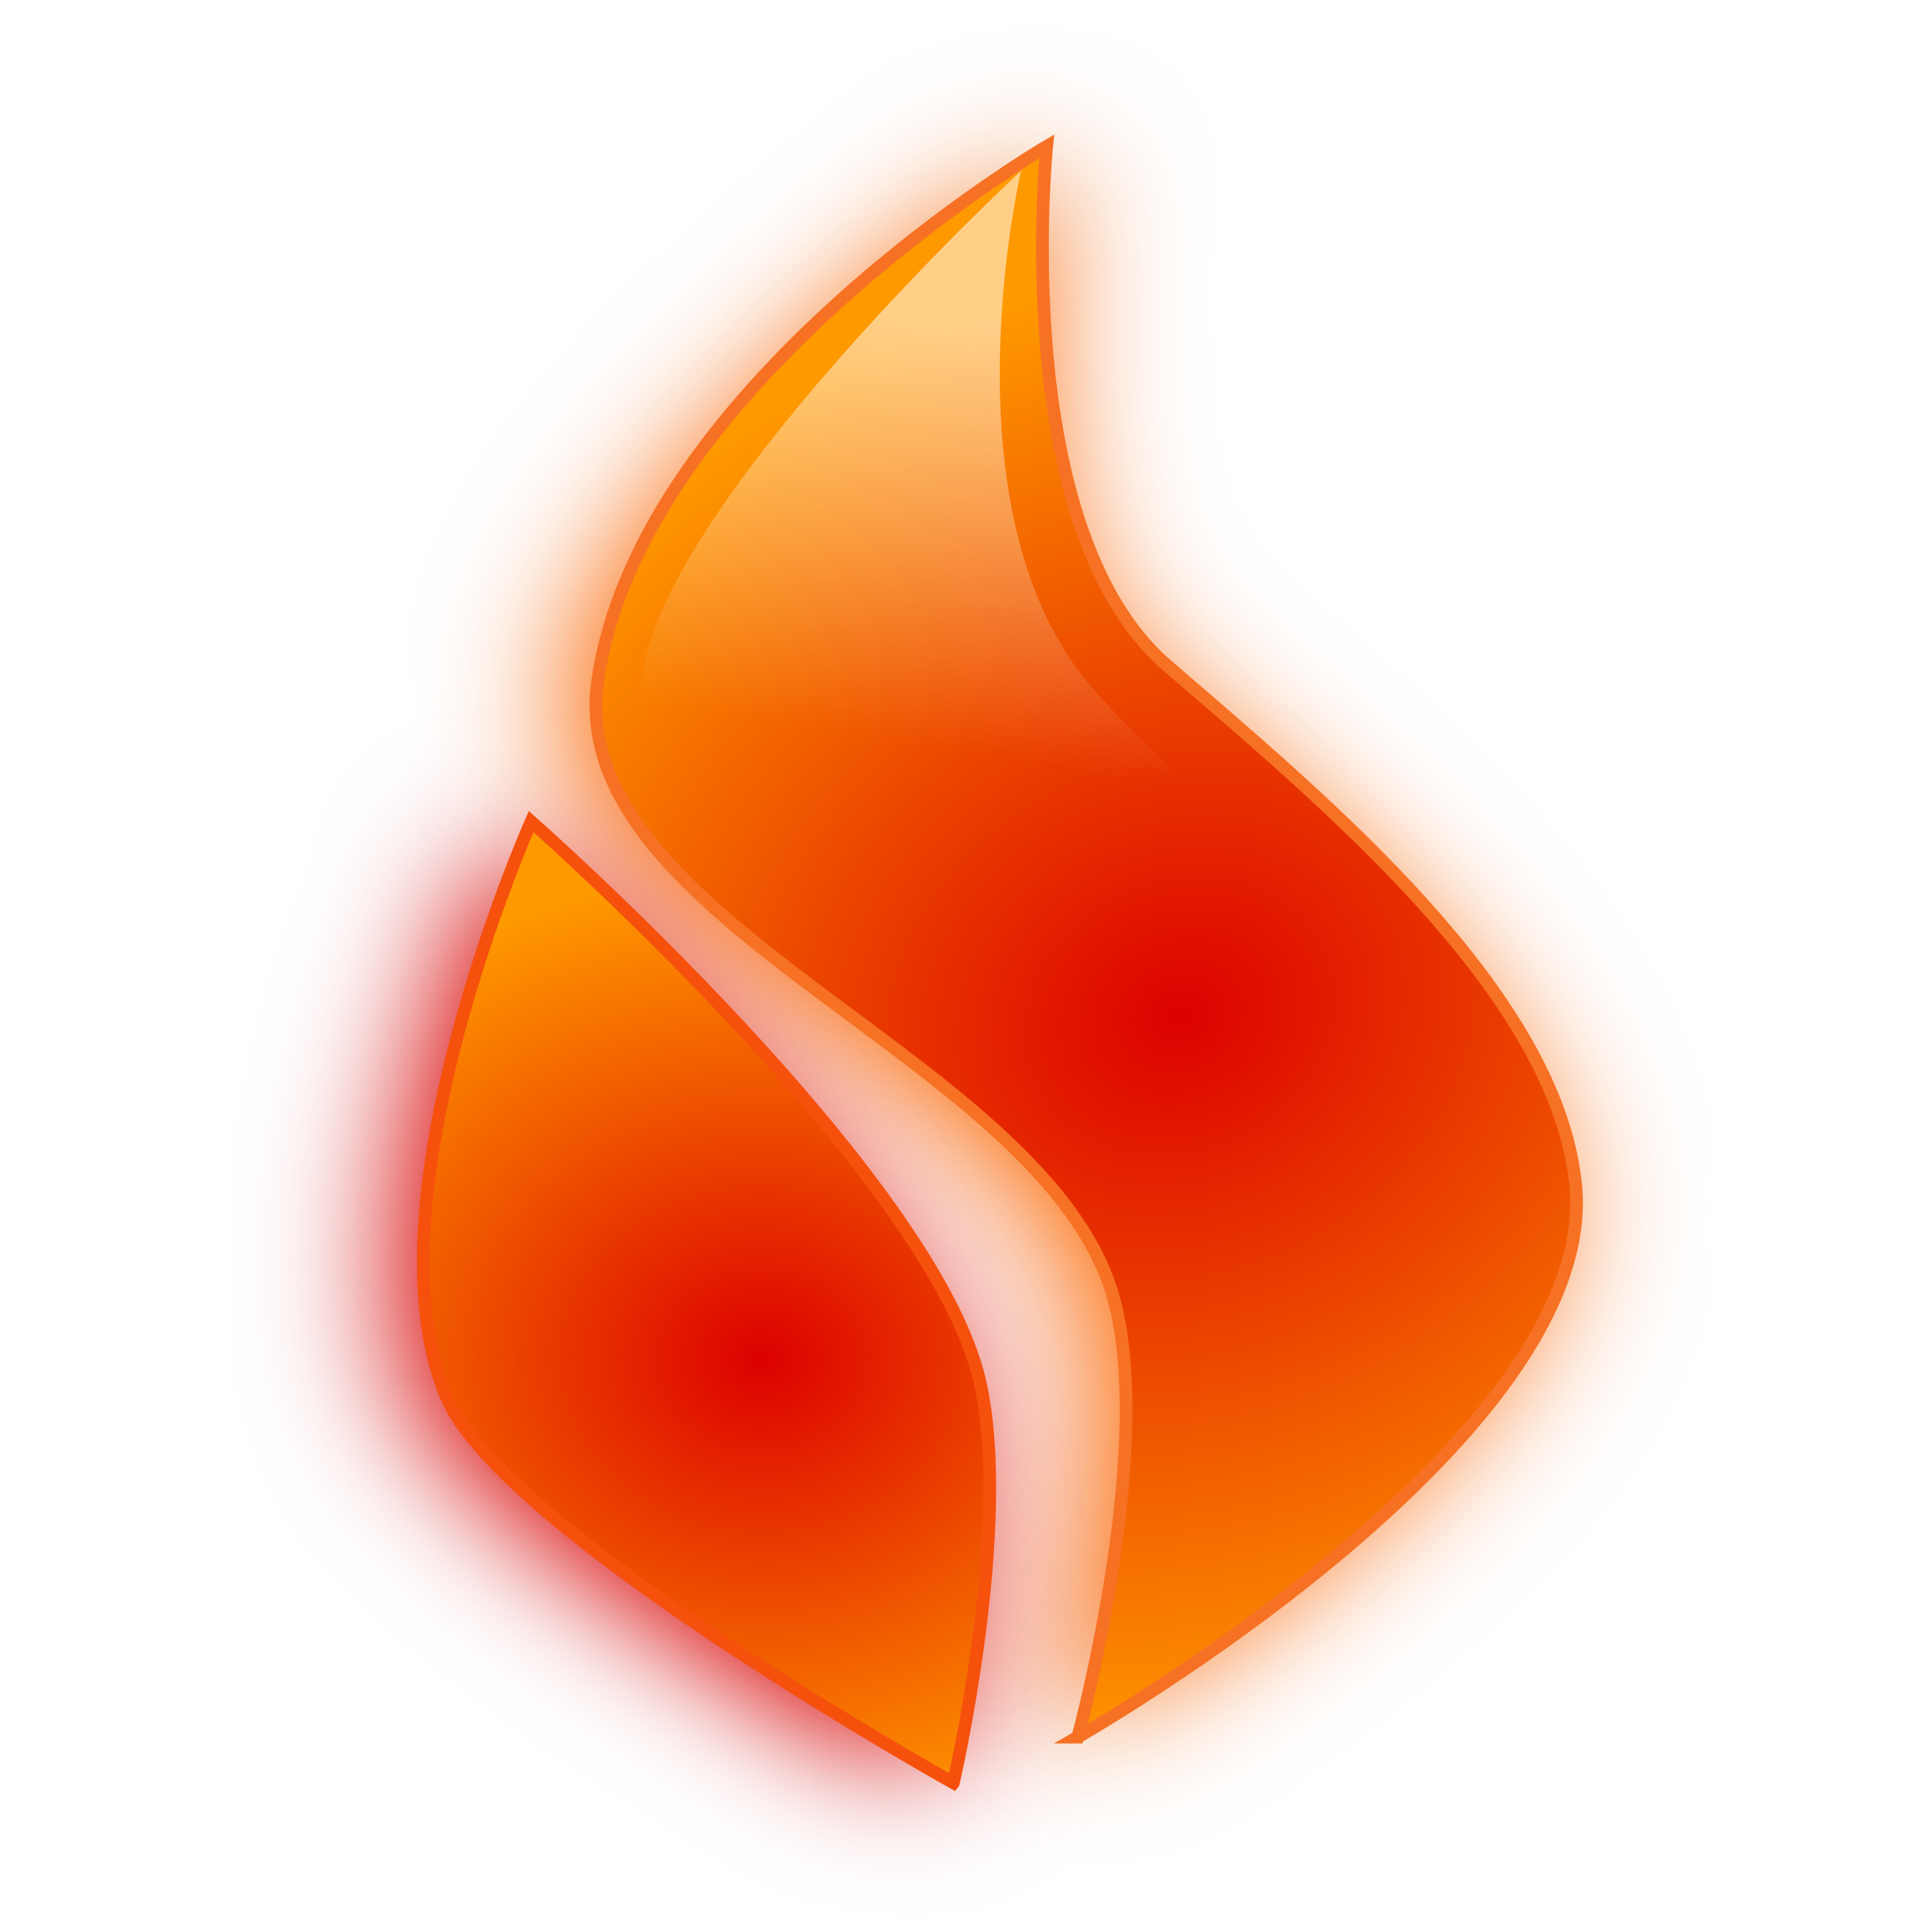 Flames clipart heat Clip Glossy Clipart — Clipartwork